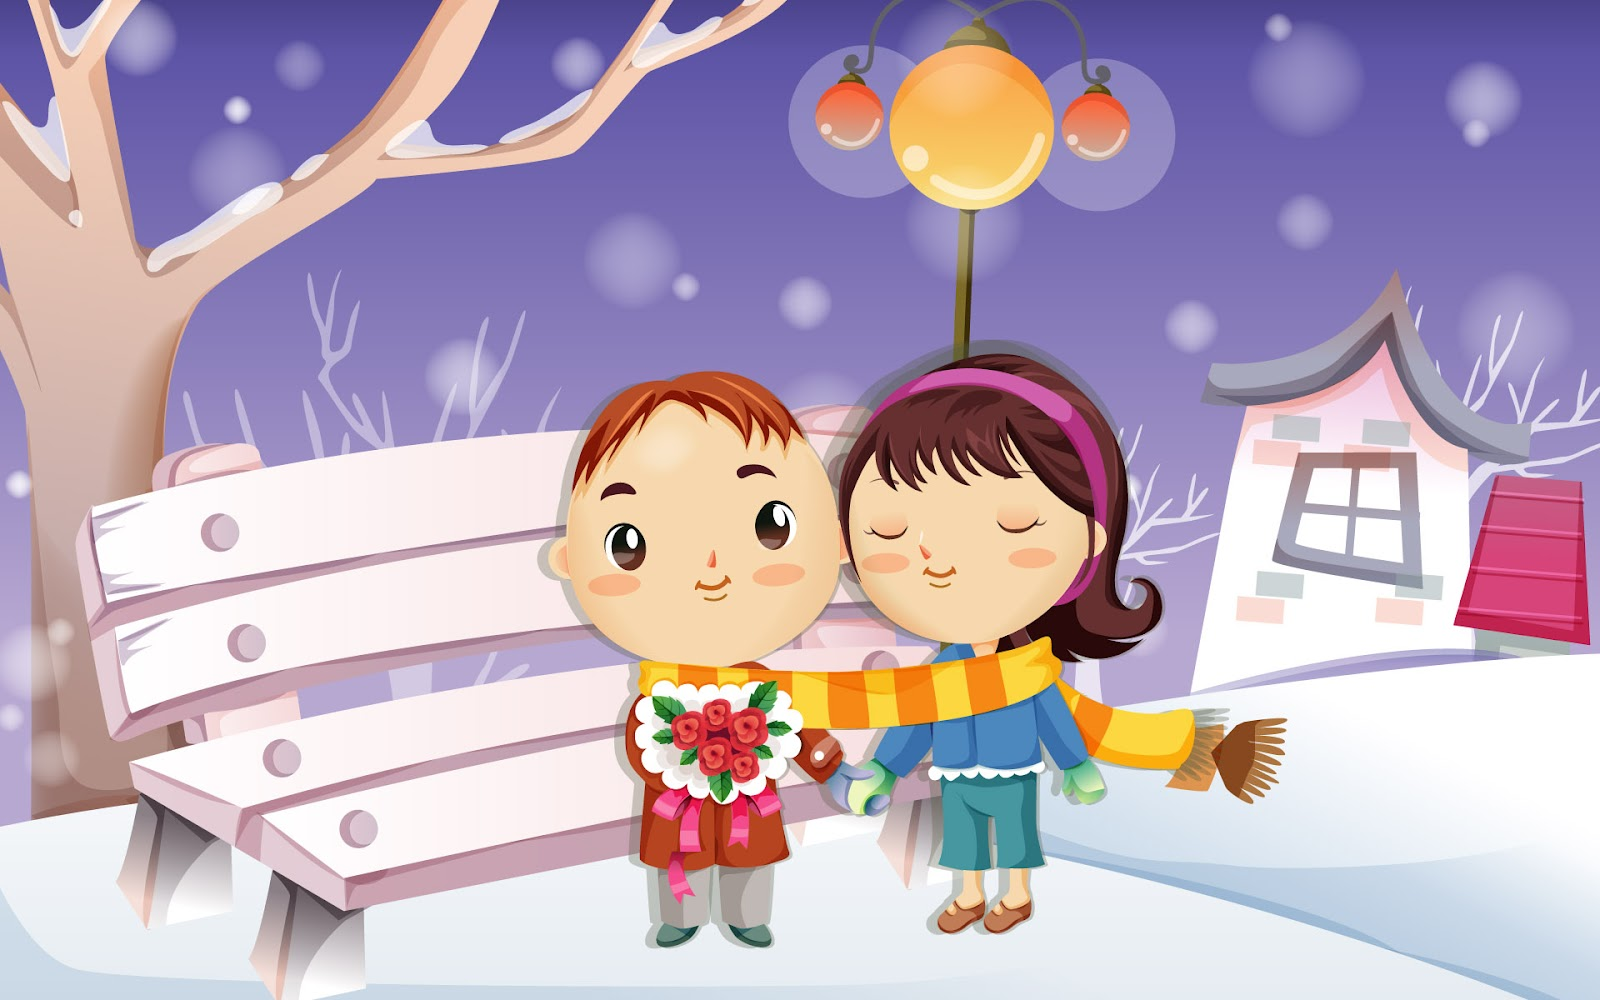 4400 Romantic Love Cartoon Wallpaper Terbaik